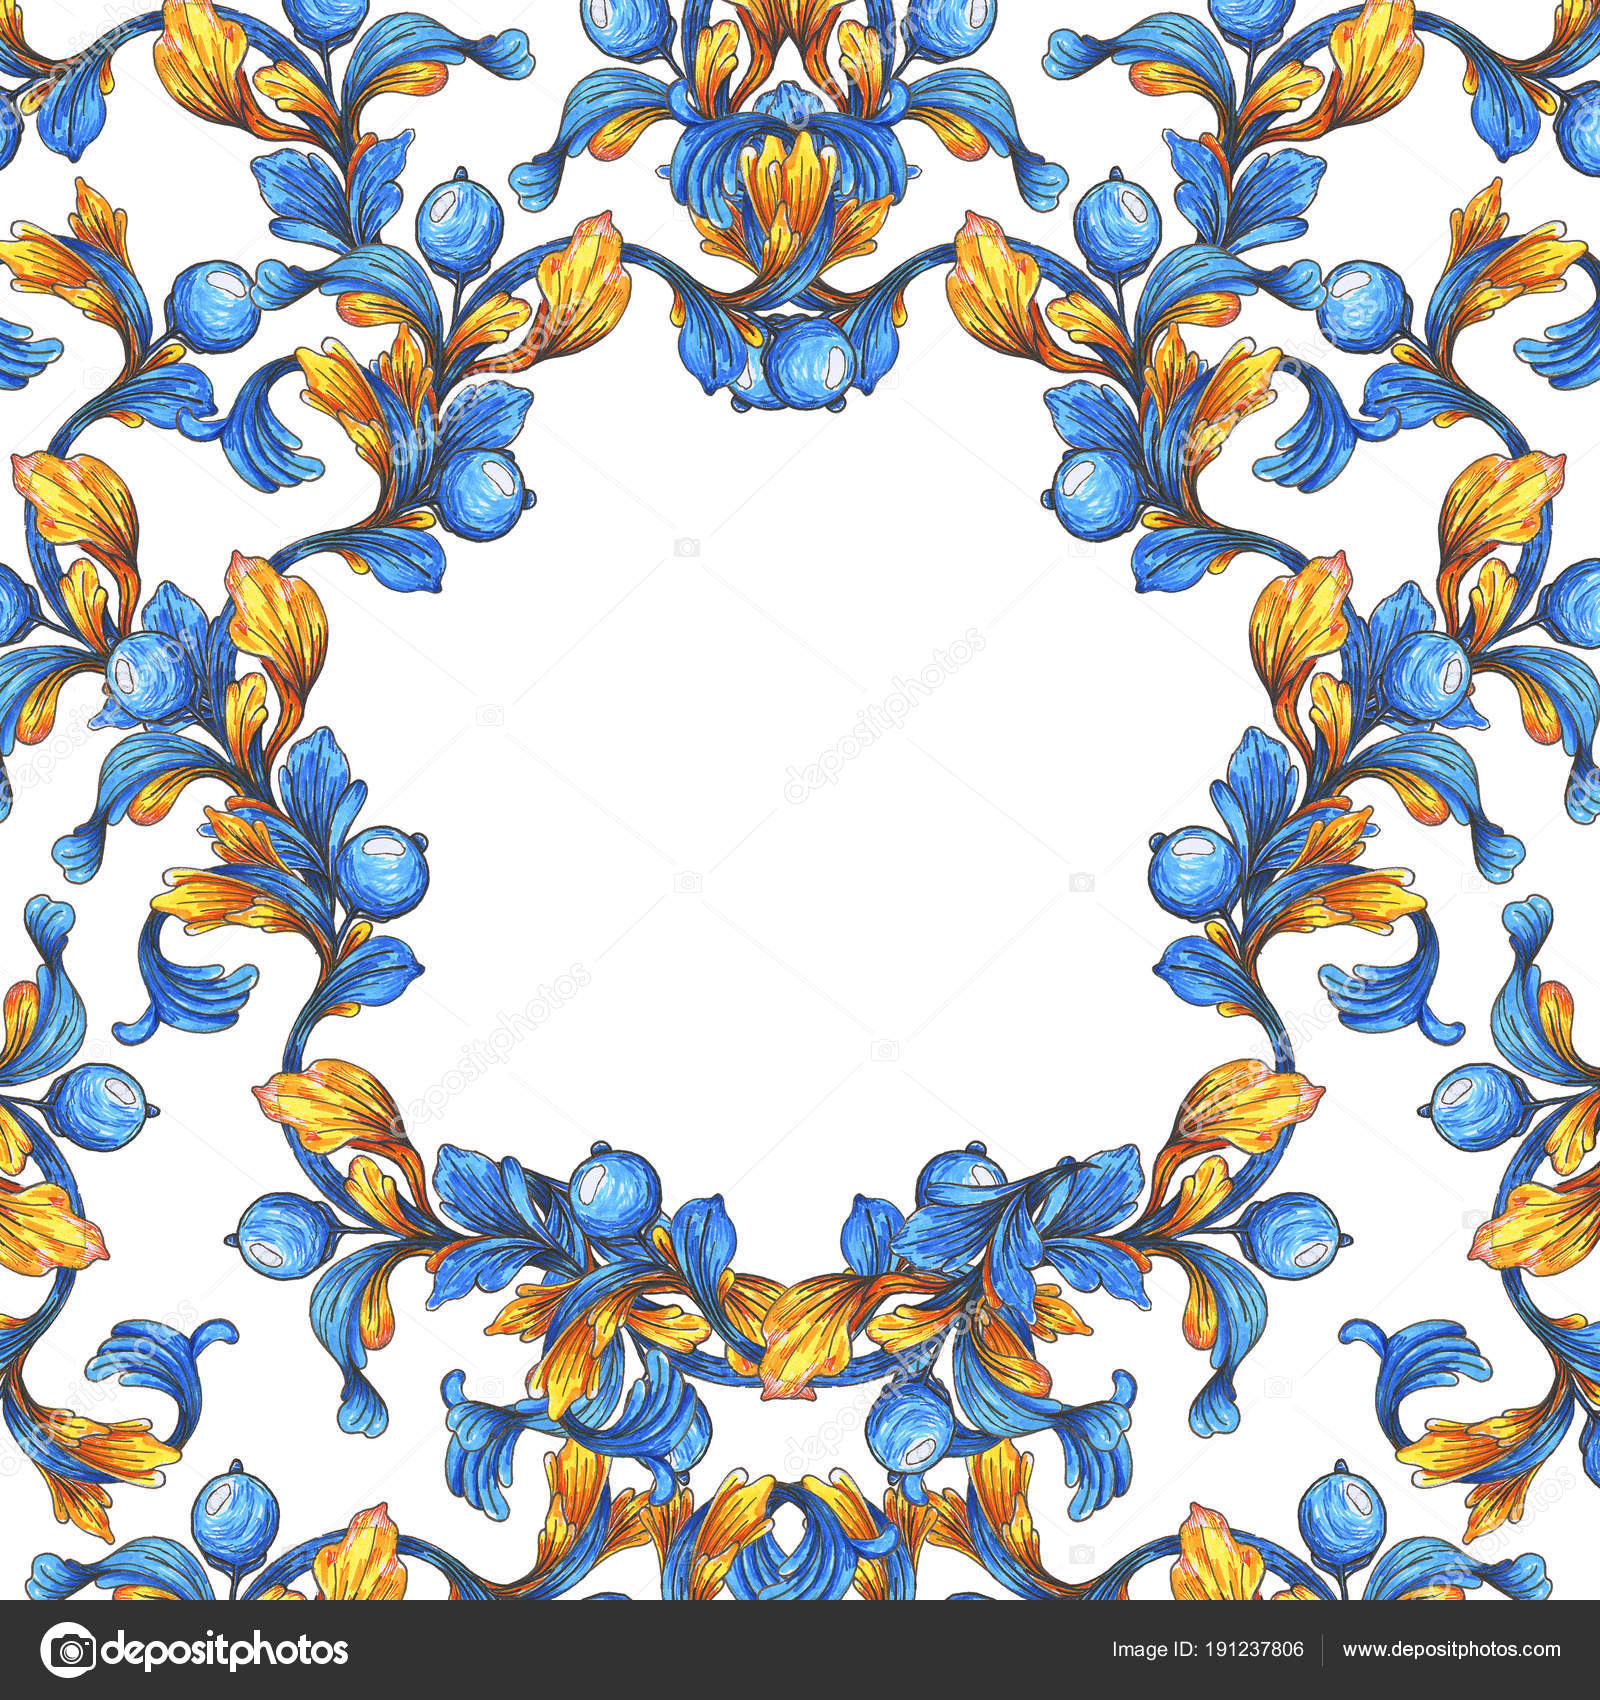 Floral Frame Border Wallpaper Baroque Watercolor Blue White